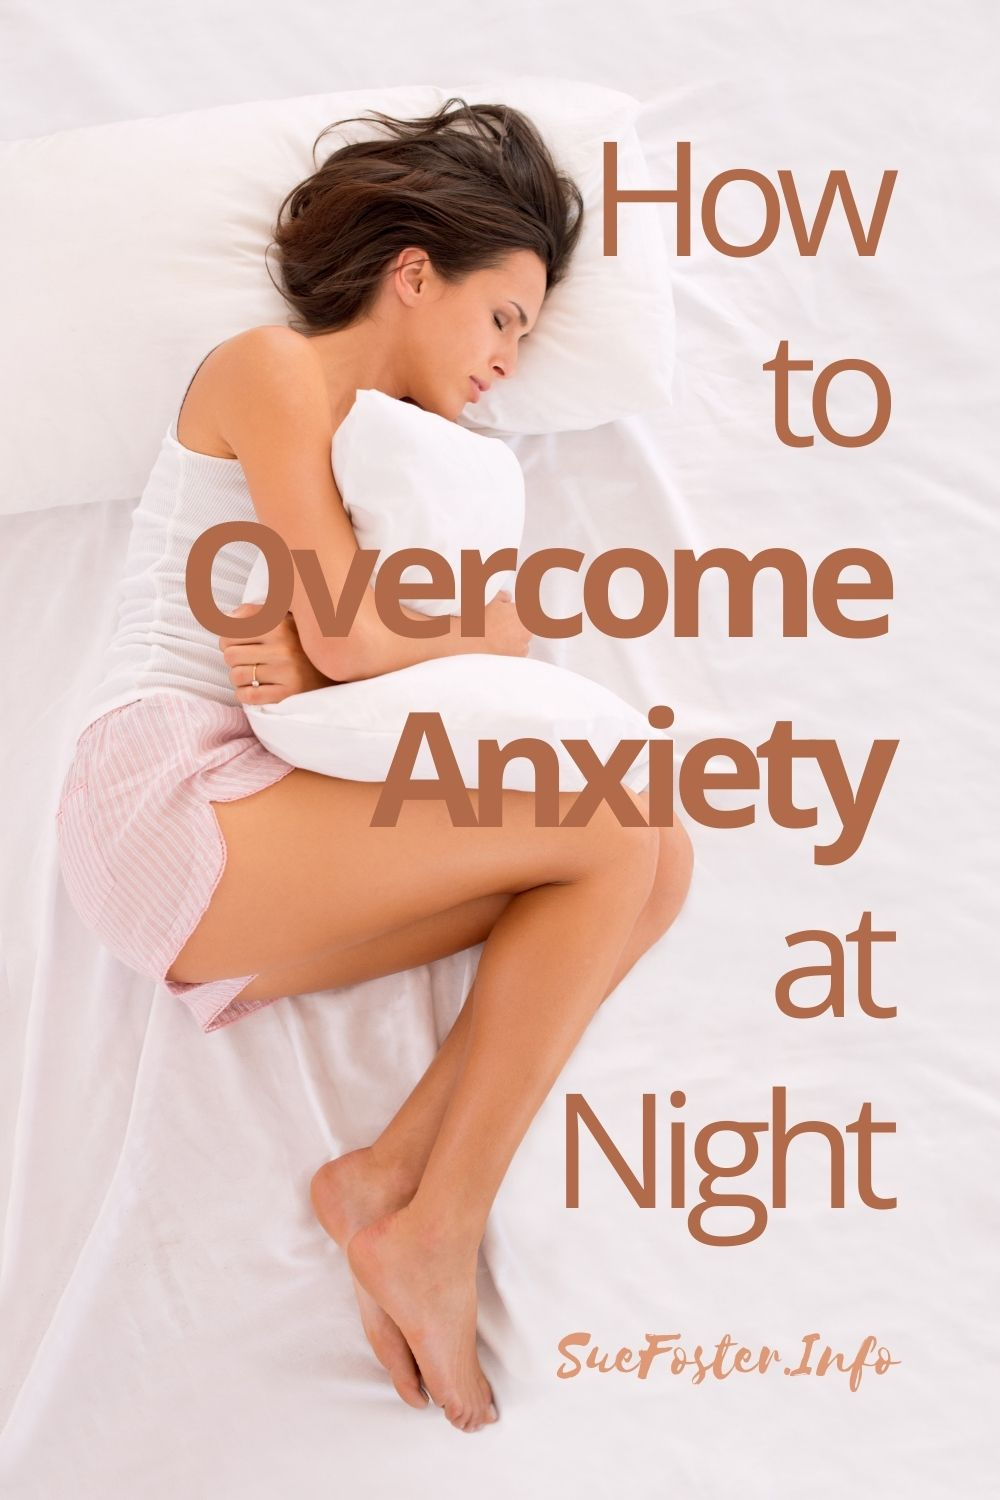 How to Overcome Anxiety at Night